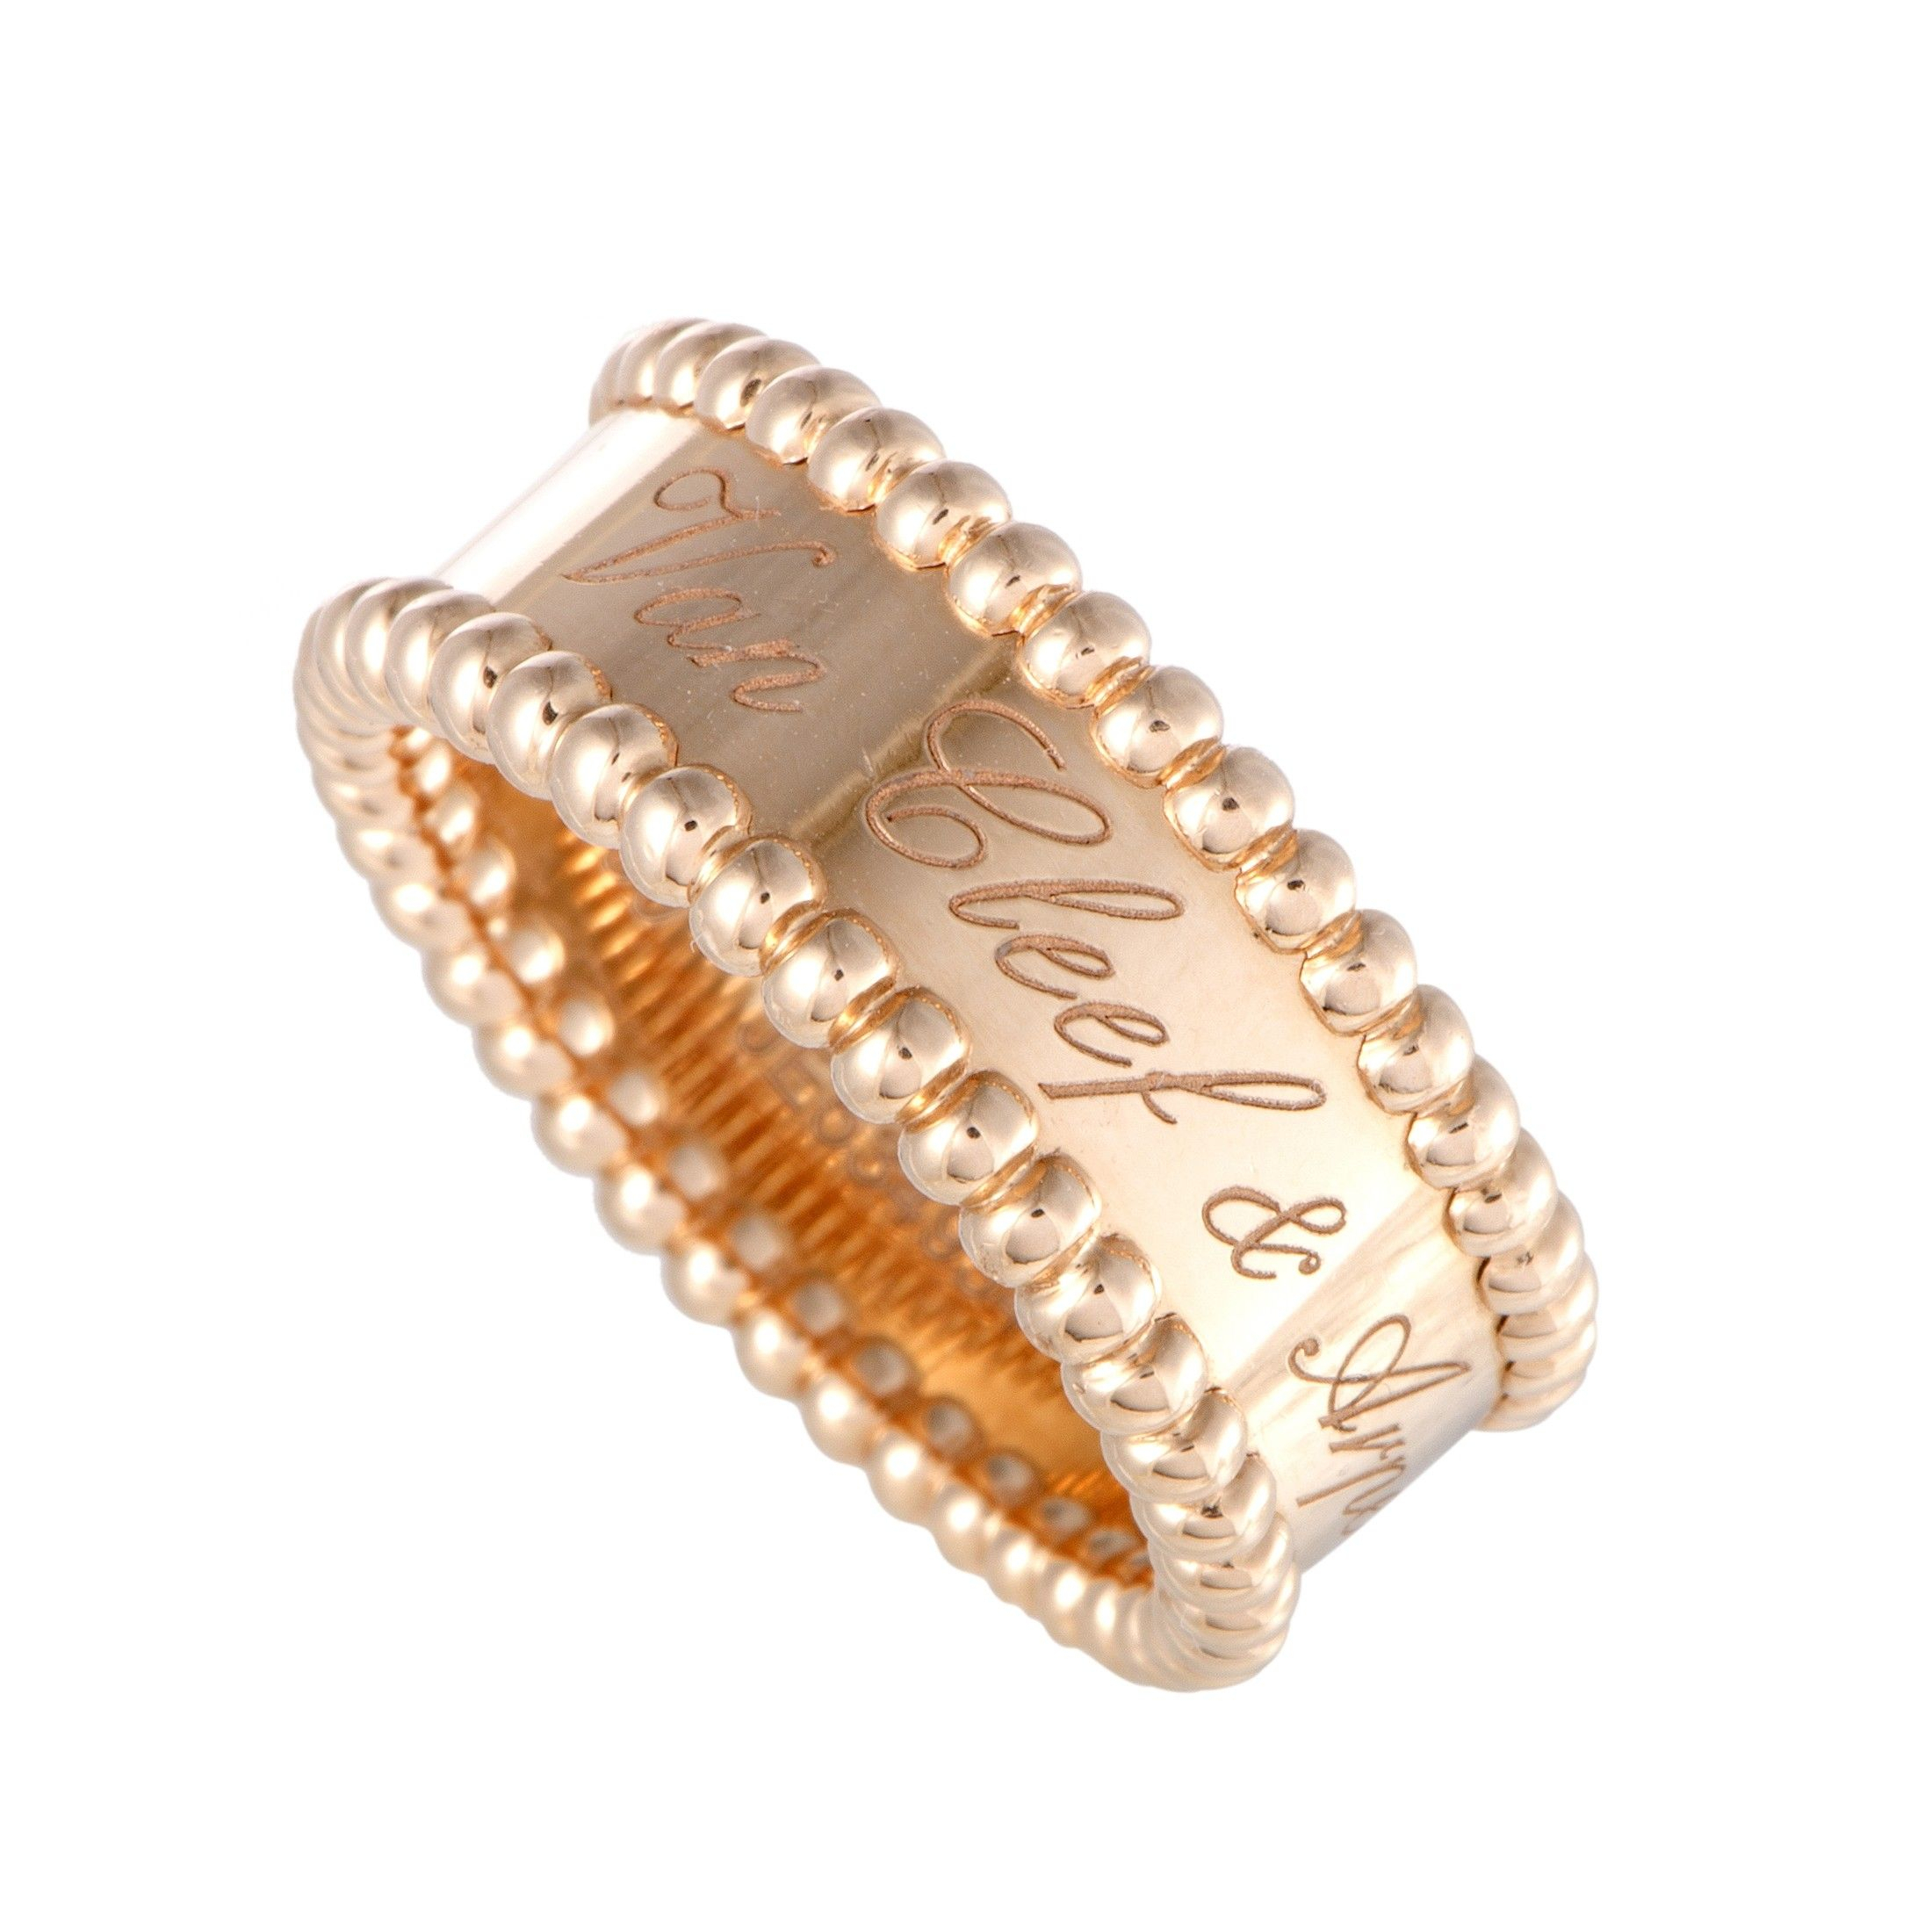 Van Cleef & Arpels Perlée Signature 18K Rose Gold Band Ring With Regard To Current Signature Bands Ring (Gallery 4 of 25)